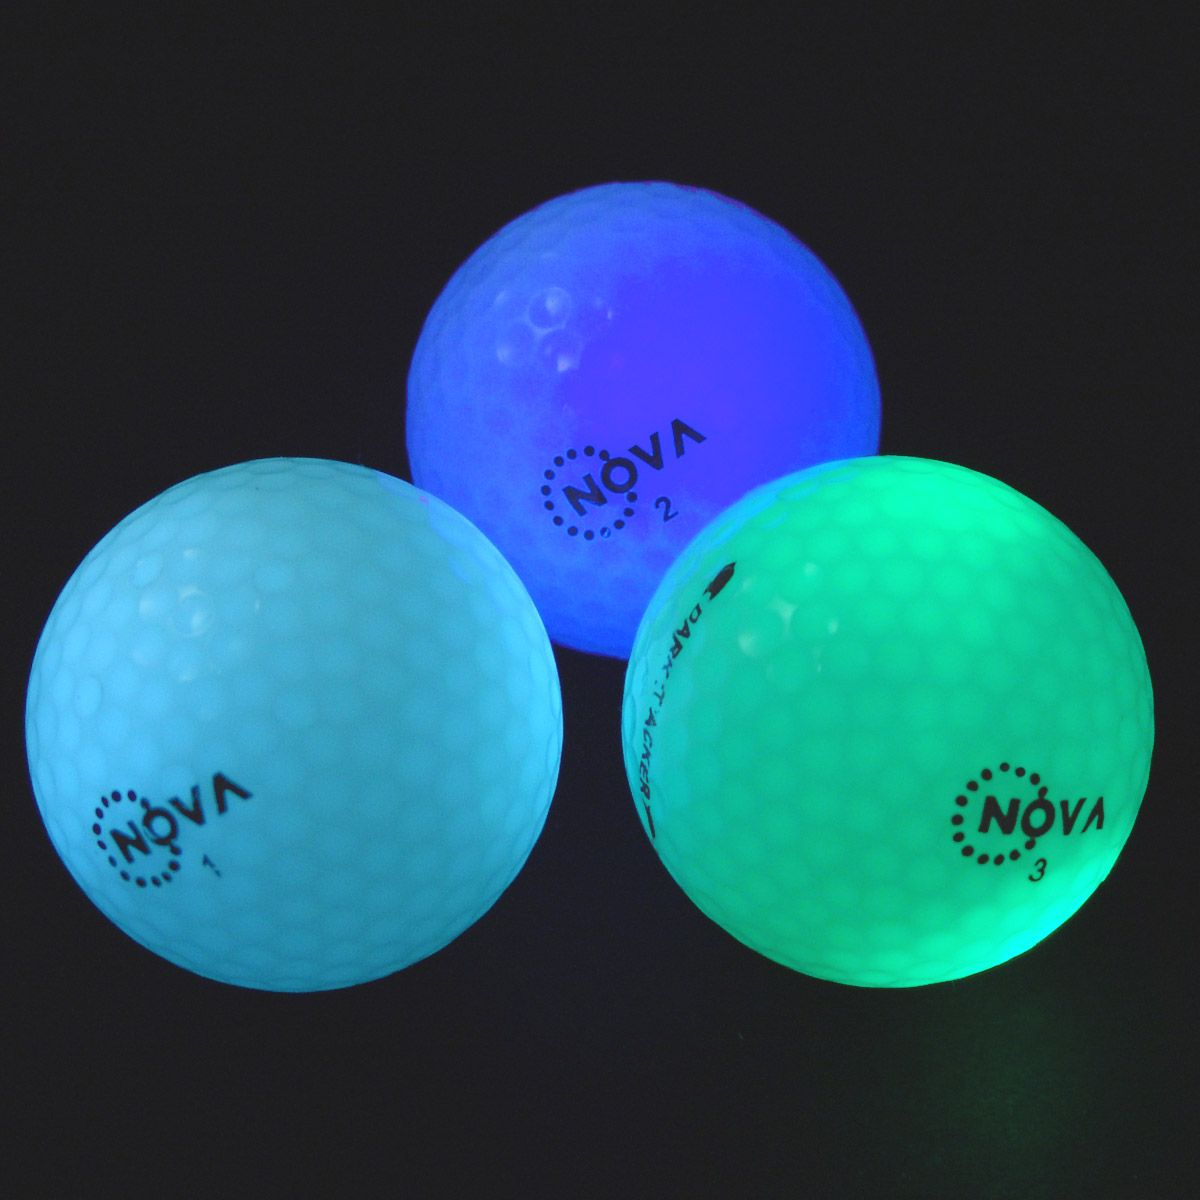 3 Pack Nova Dark Tracker Light Up Golf Balls Led Glow Night Twilight 3 Color Golf Ball Golf Ball Gift Golf